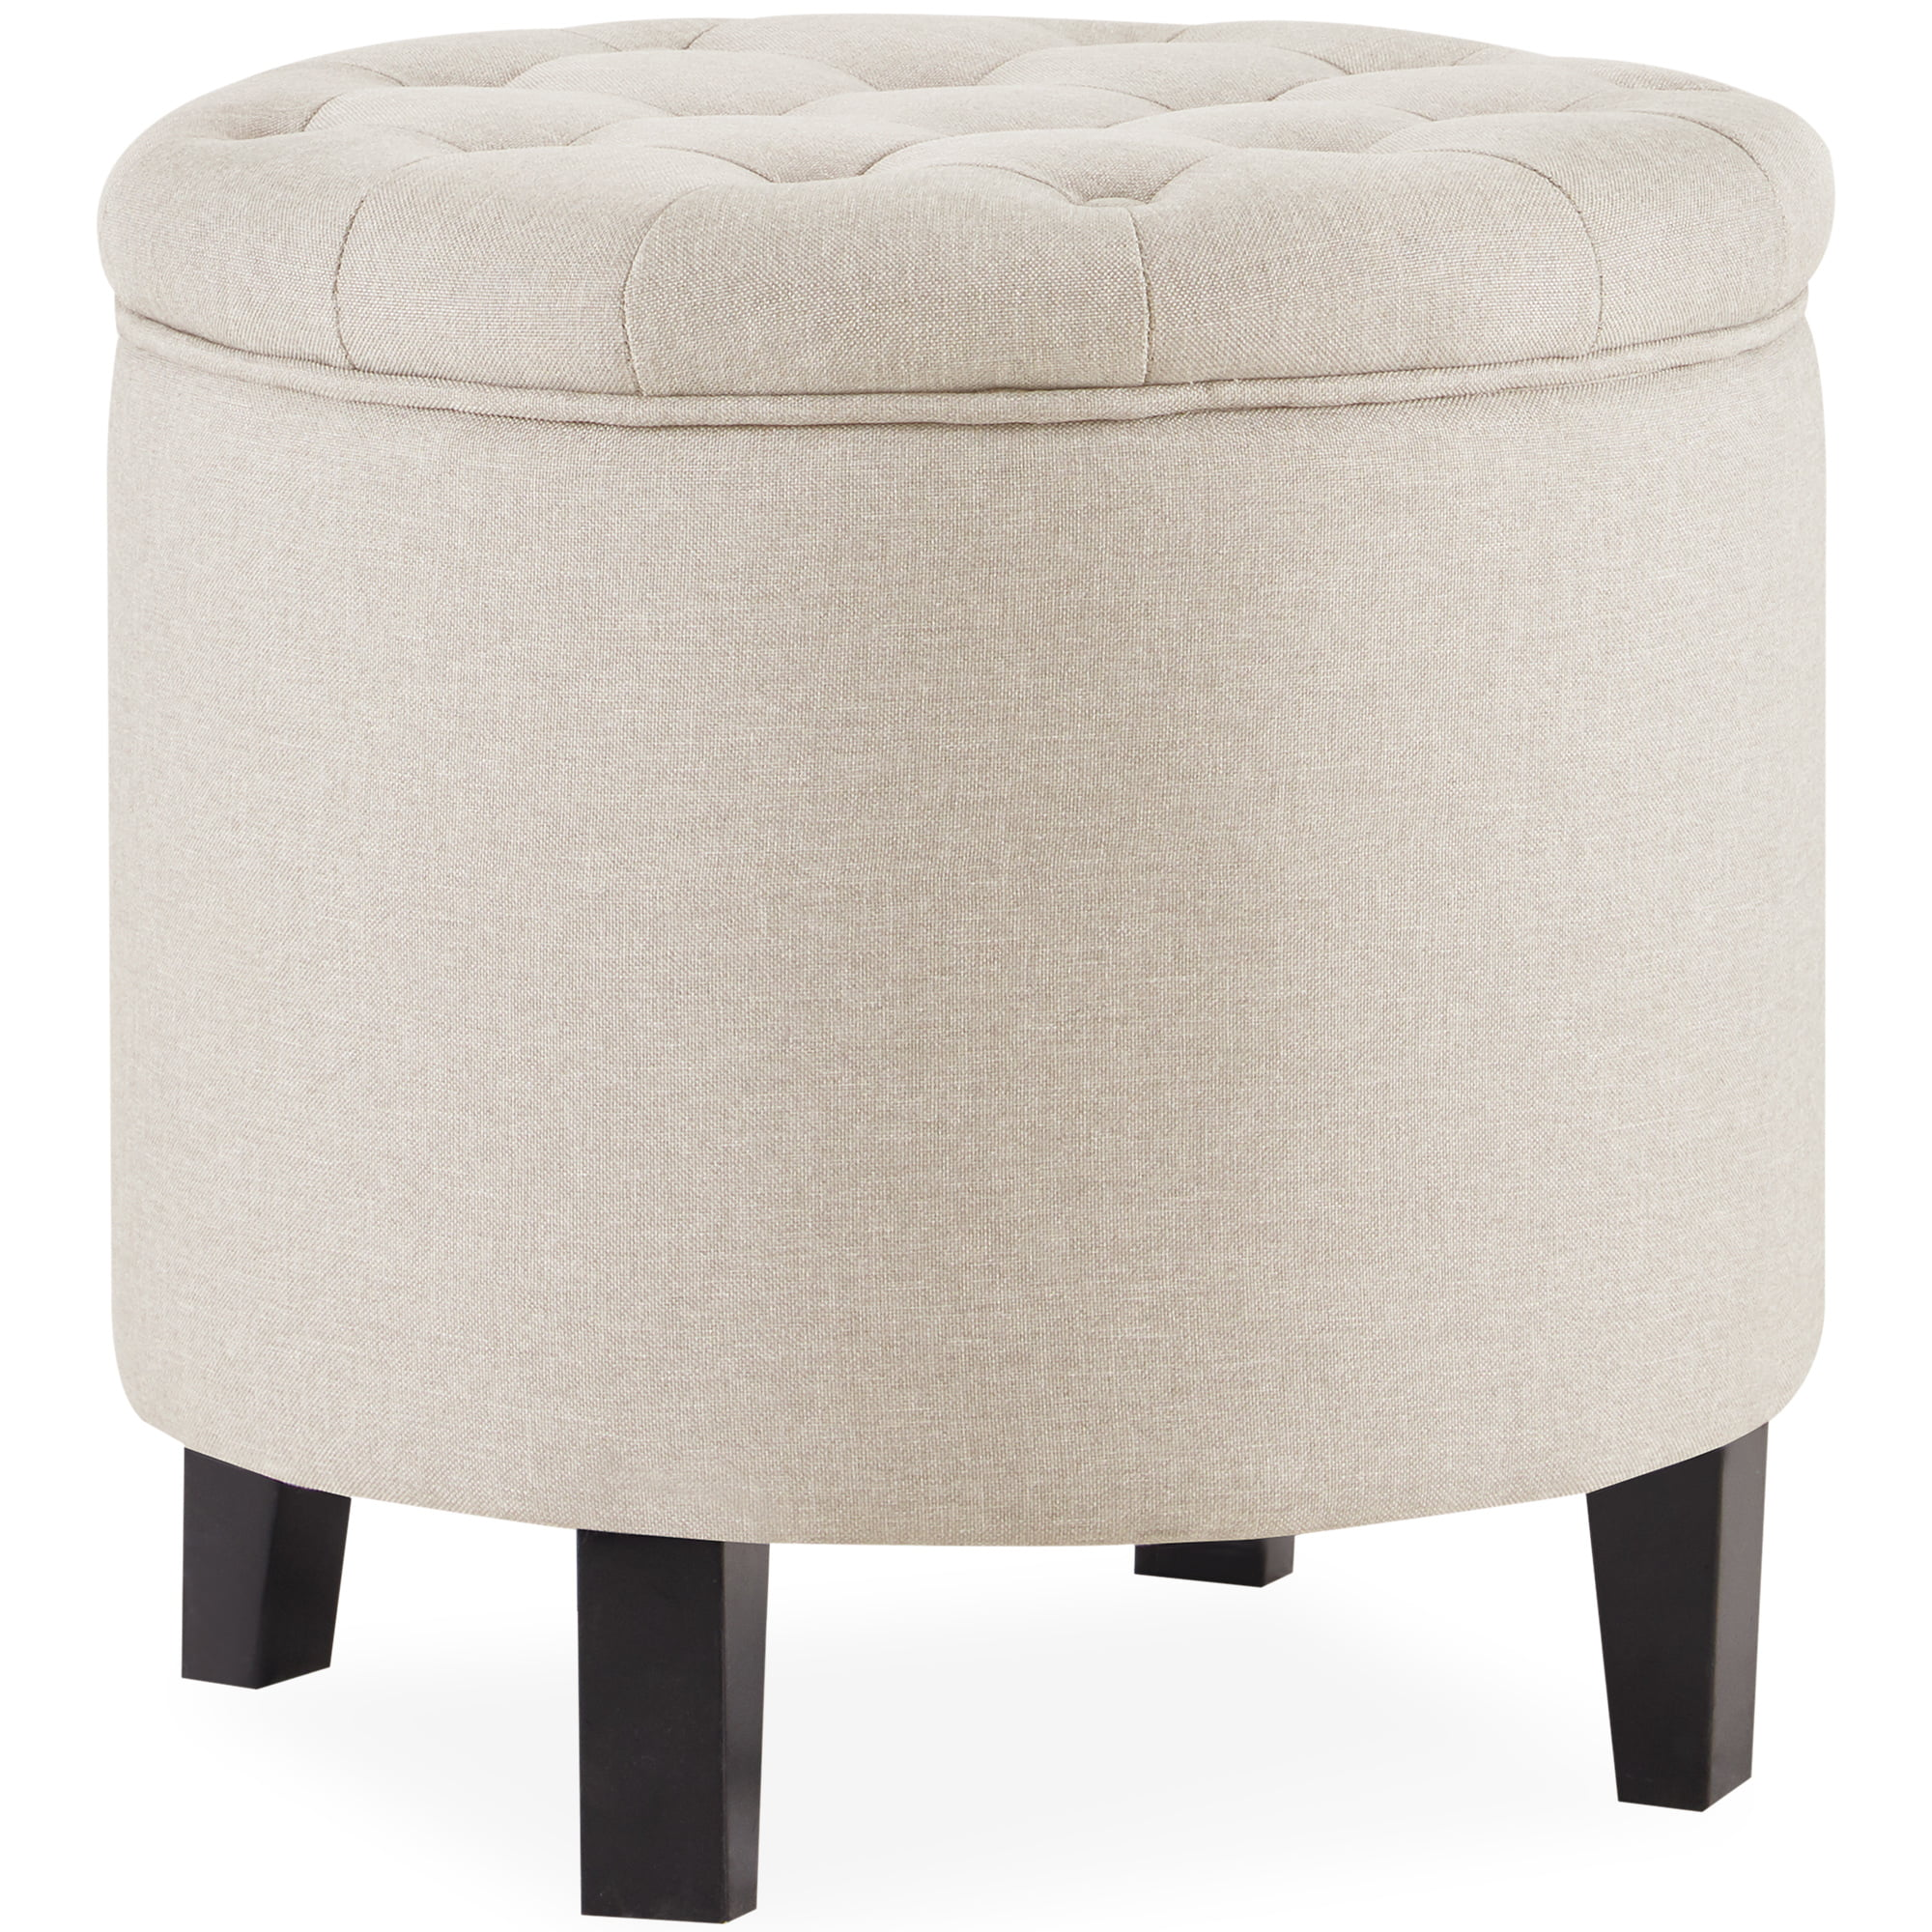 belleze nailhead round tufted storage ottoman large footrest stool coffee table lift top walmart com